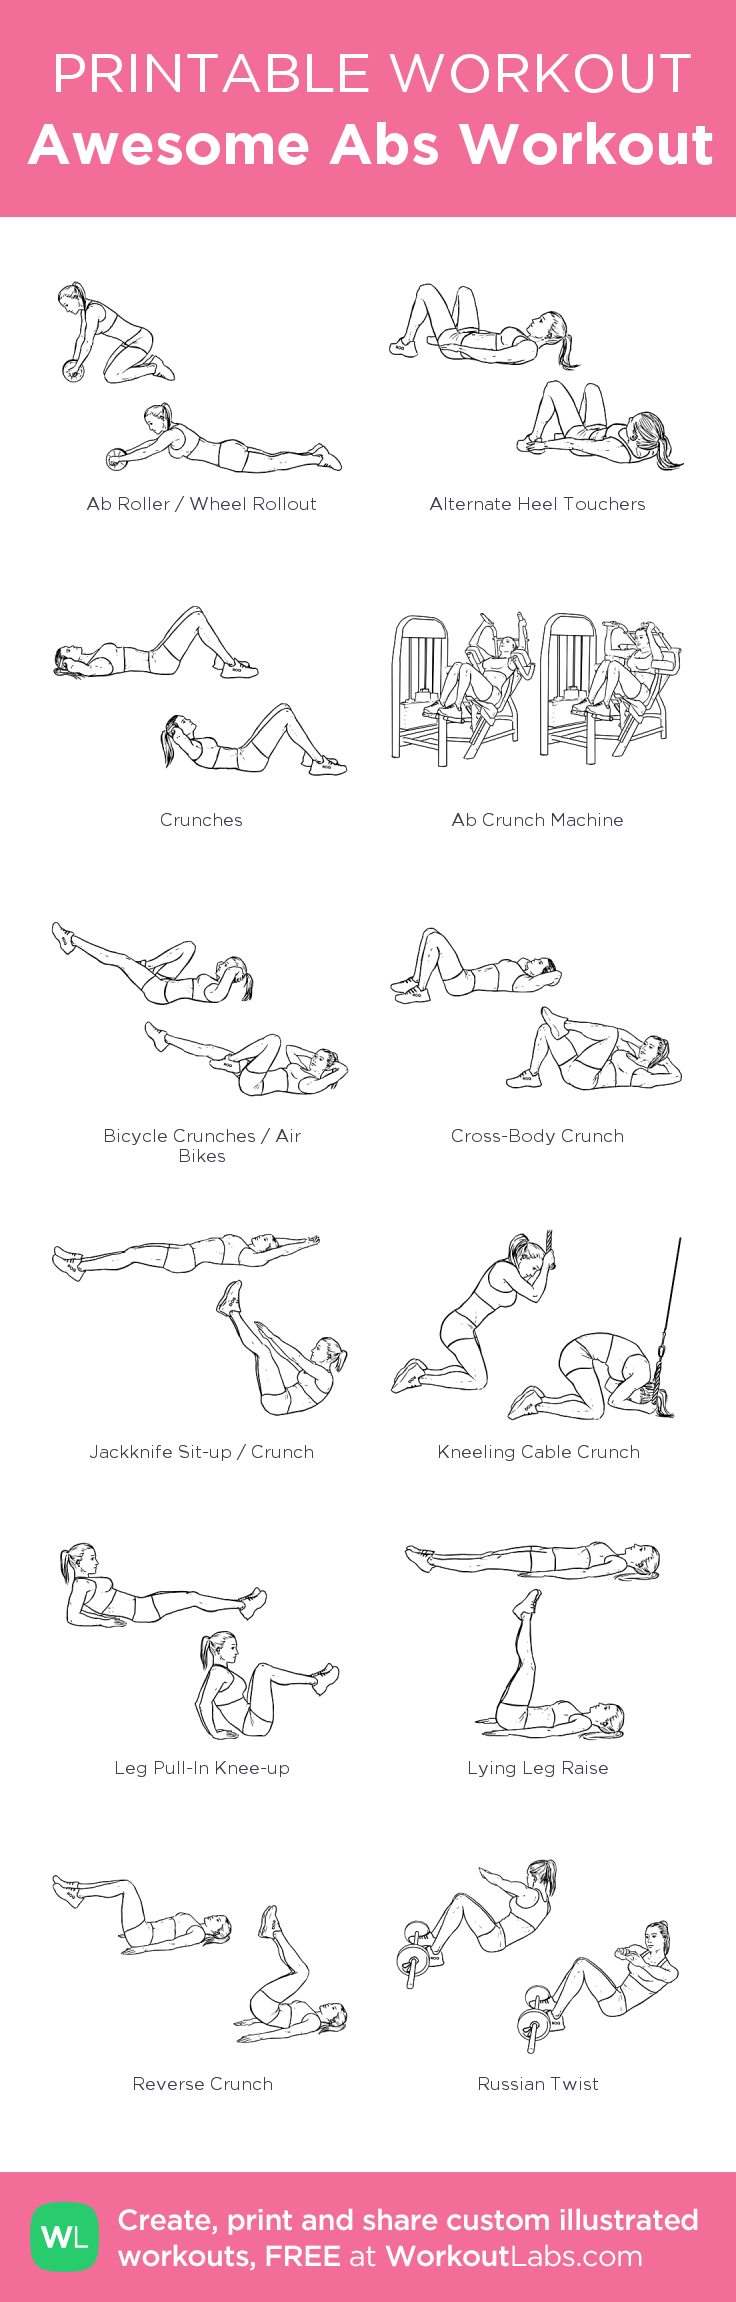 image relating to Printable Ab Workouts named Wonderful Ab muscles Work out: my personalized printable exercise session by means of